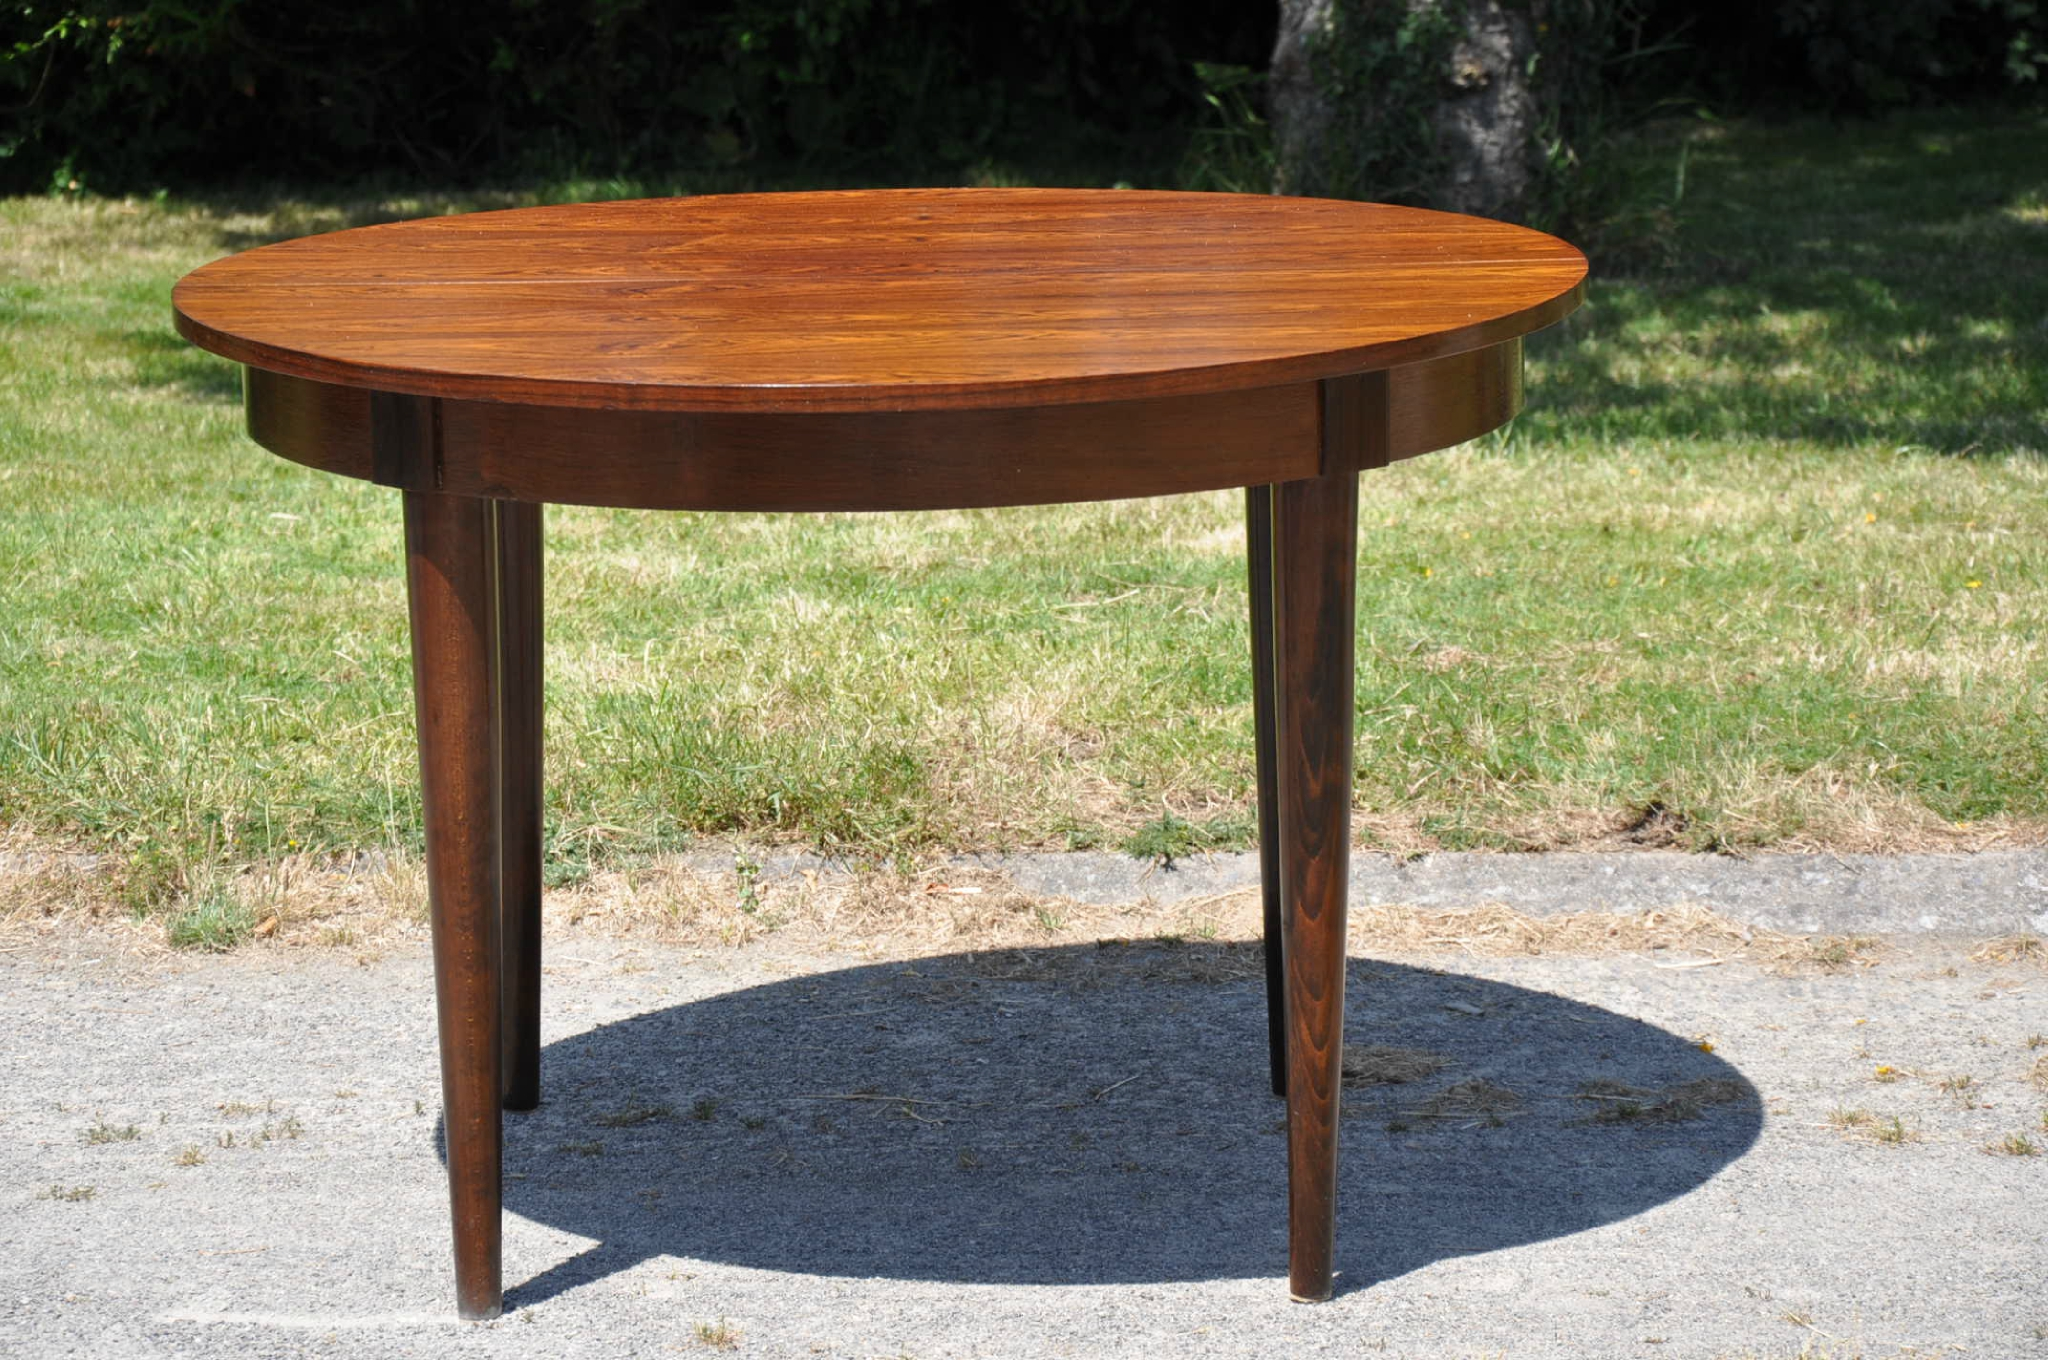 Table Ronde De Type Scandinave Article Vendu